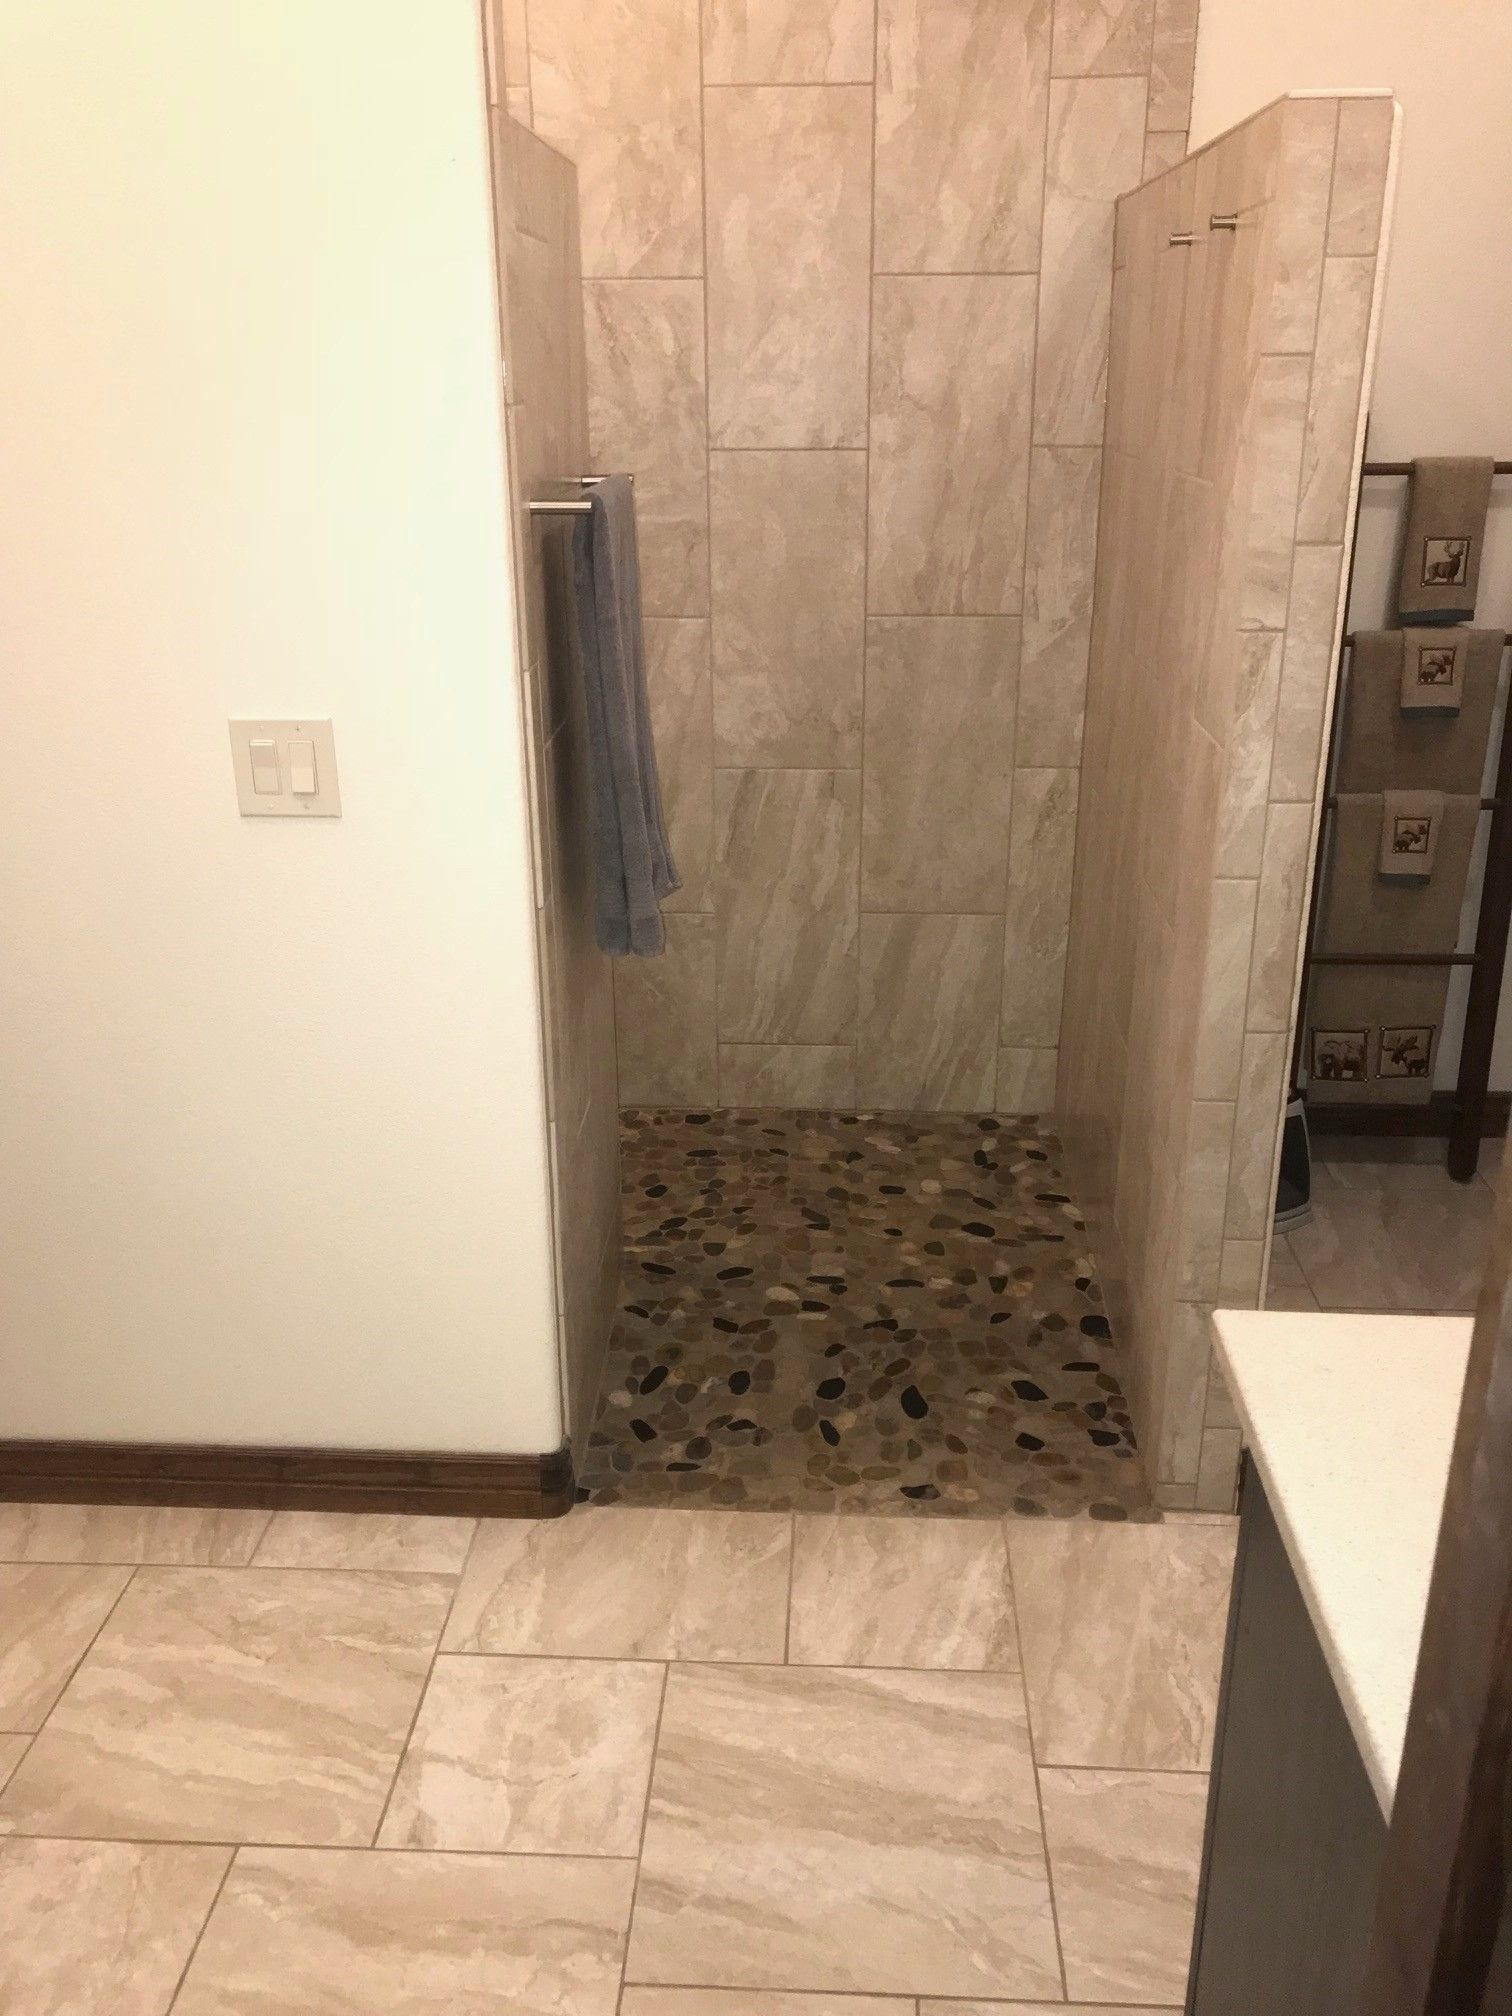 Wall And Bathroom Floor Is Mingle Soft Rock Shower Pan Is Mixed